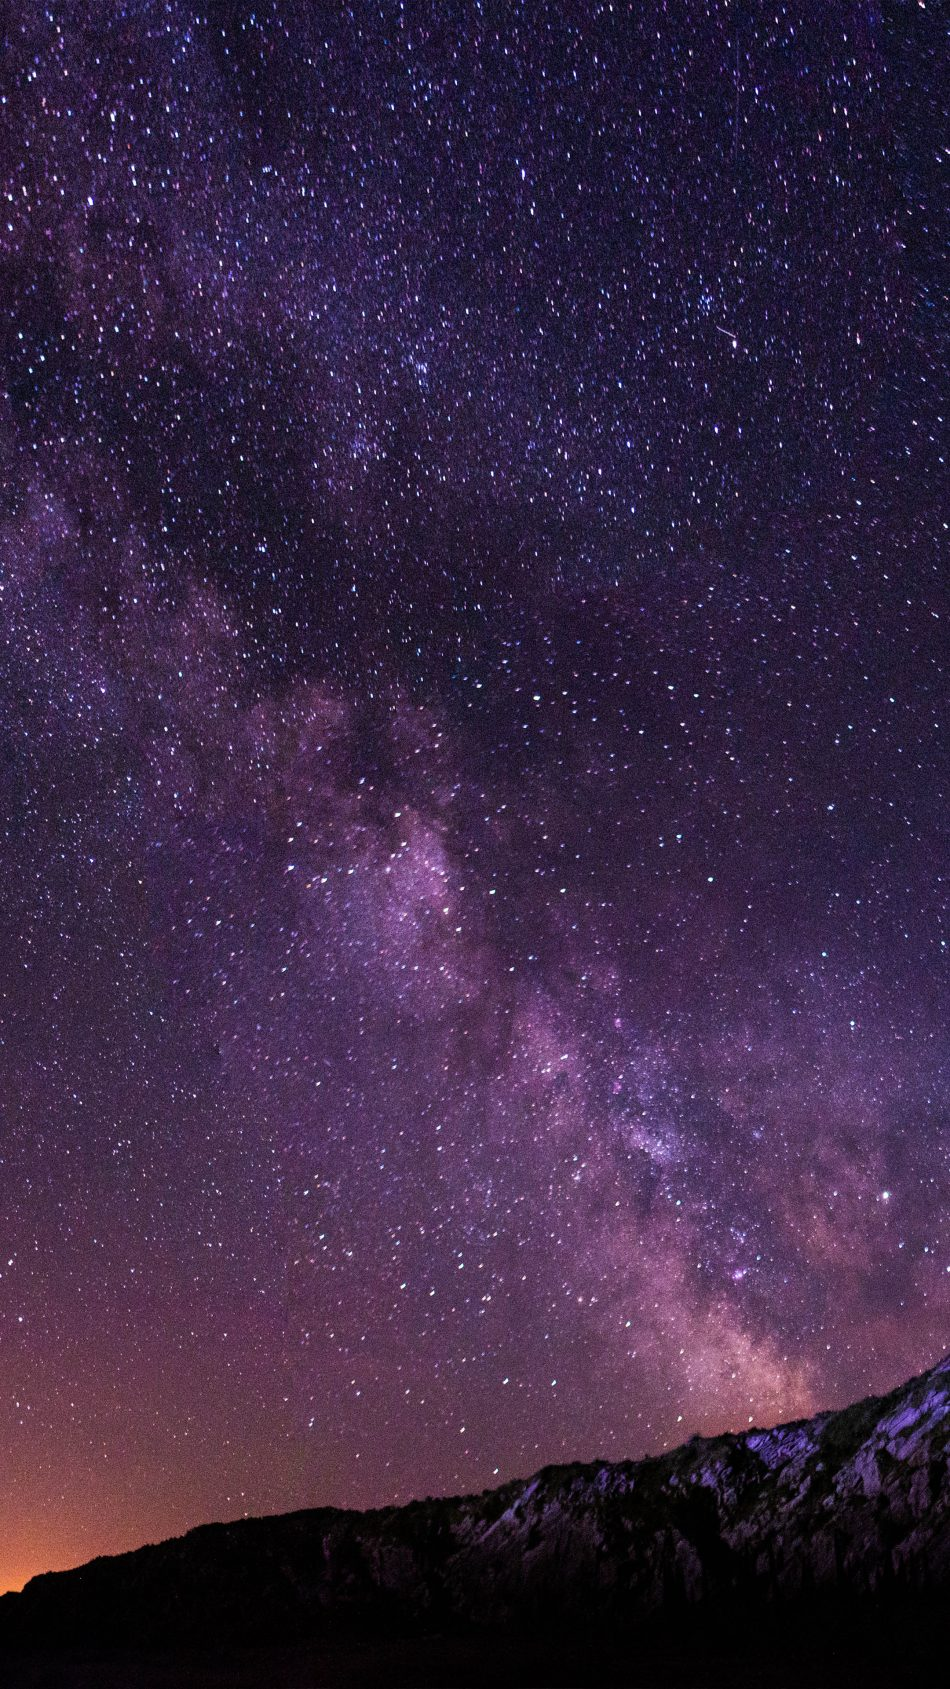 Milky Way Wallpaper 4k Posted By Michelle Tremblay